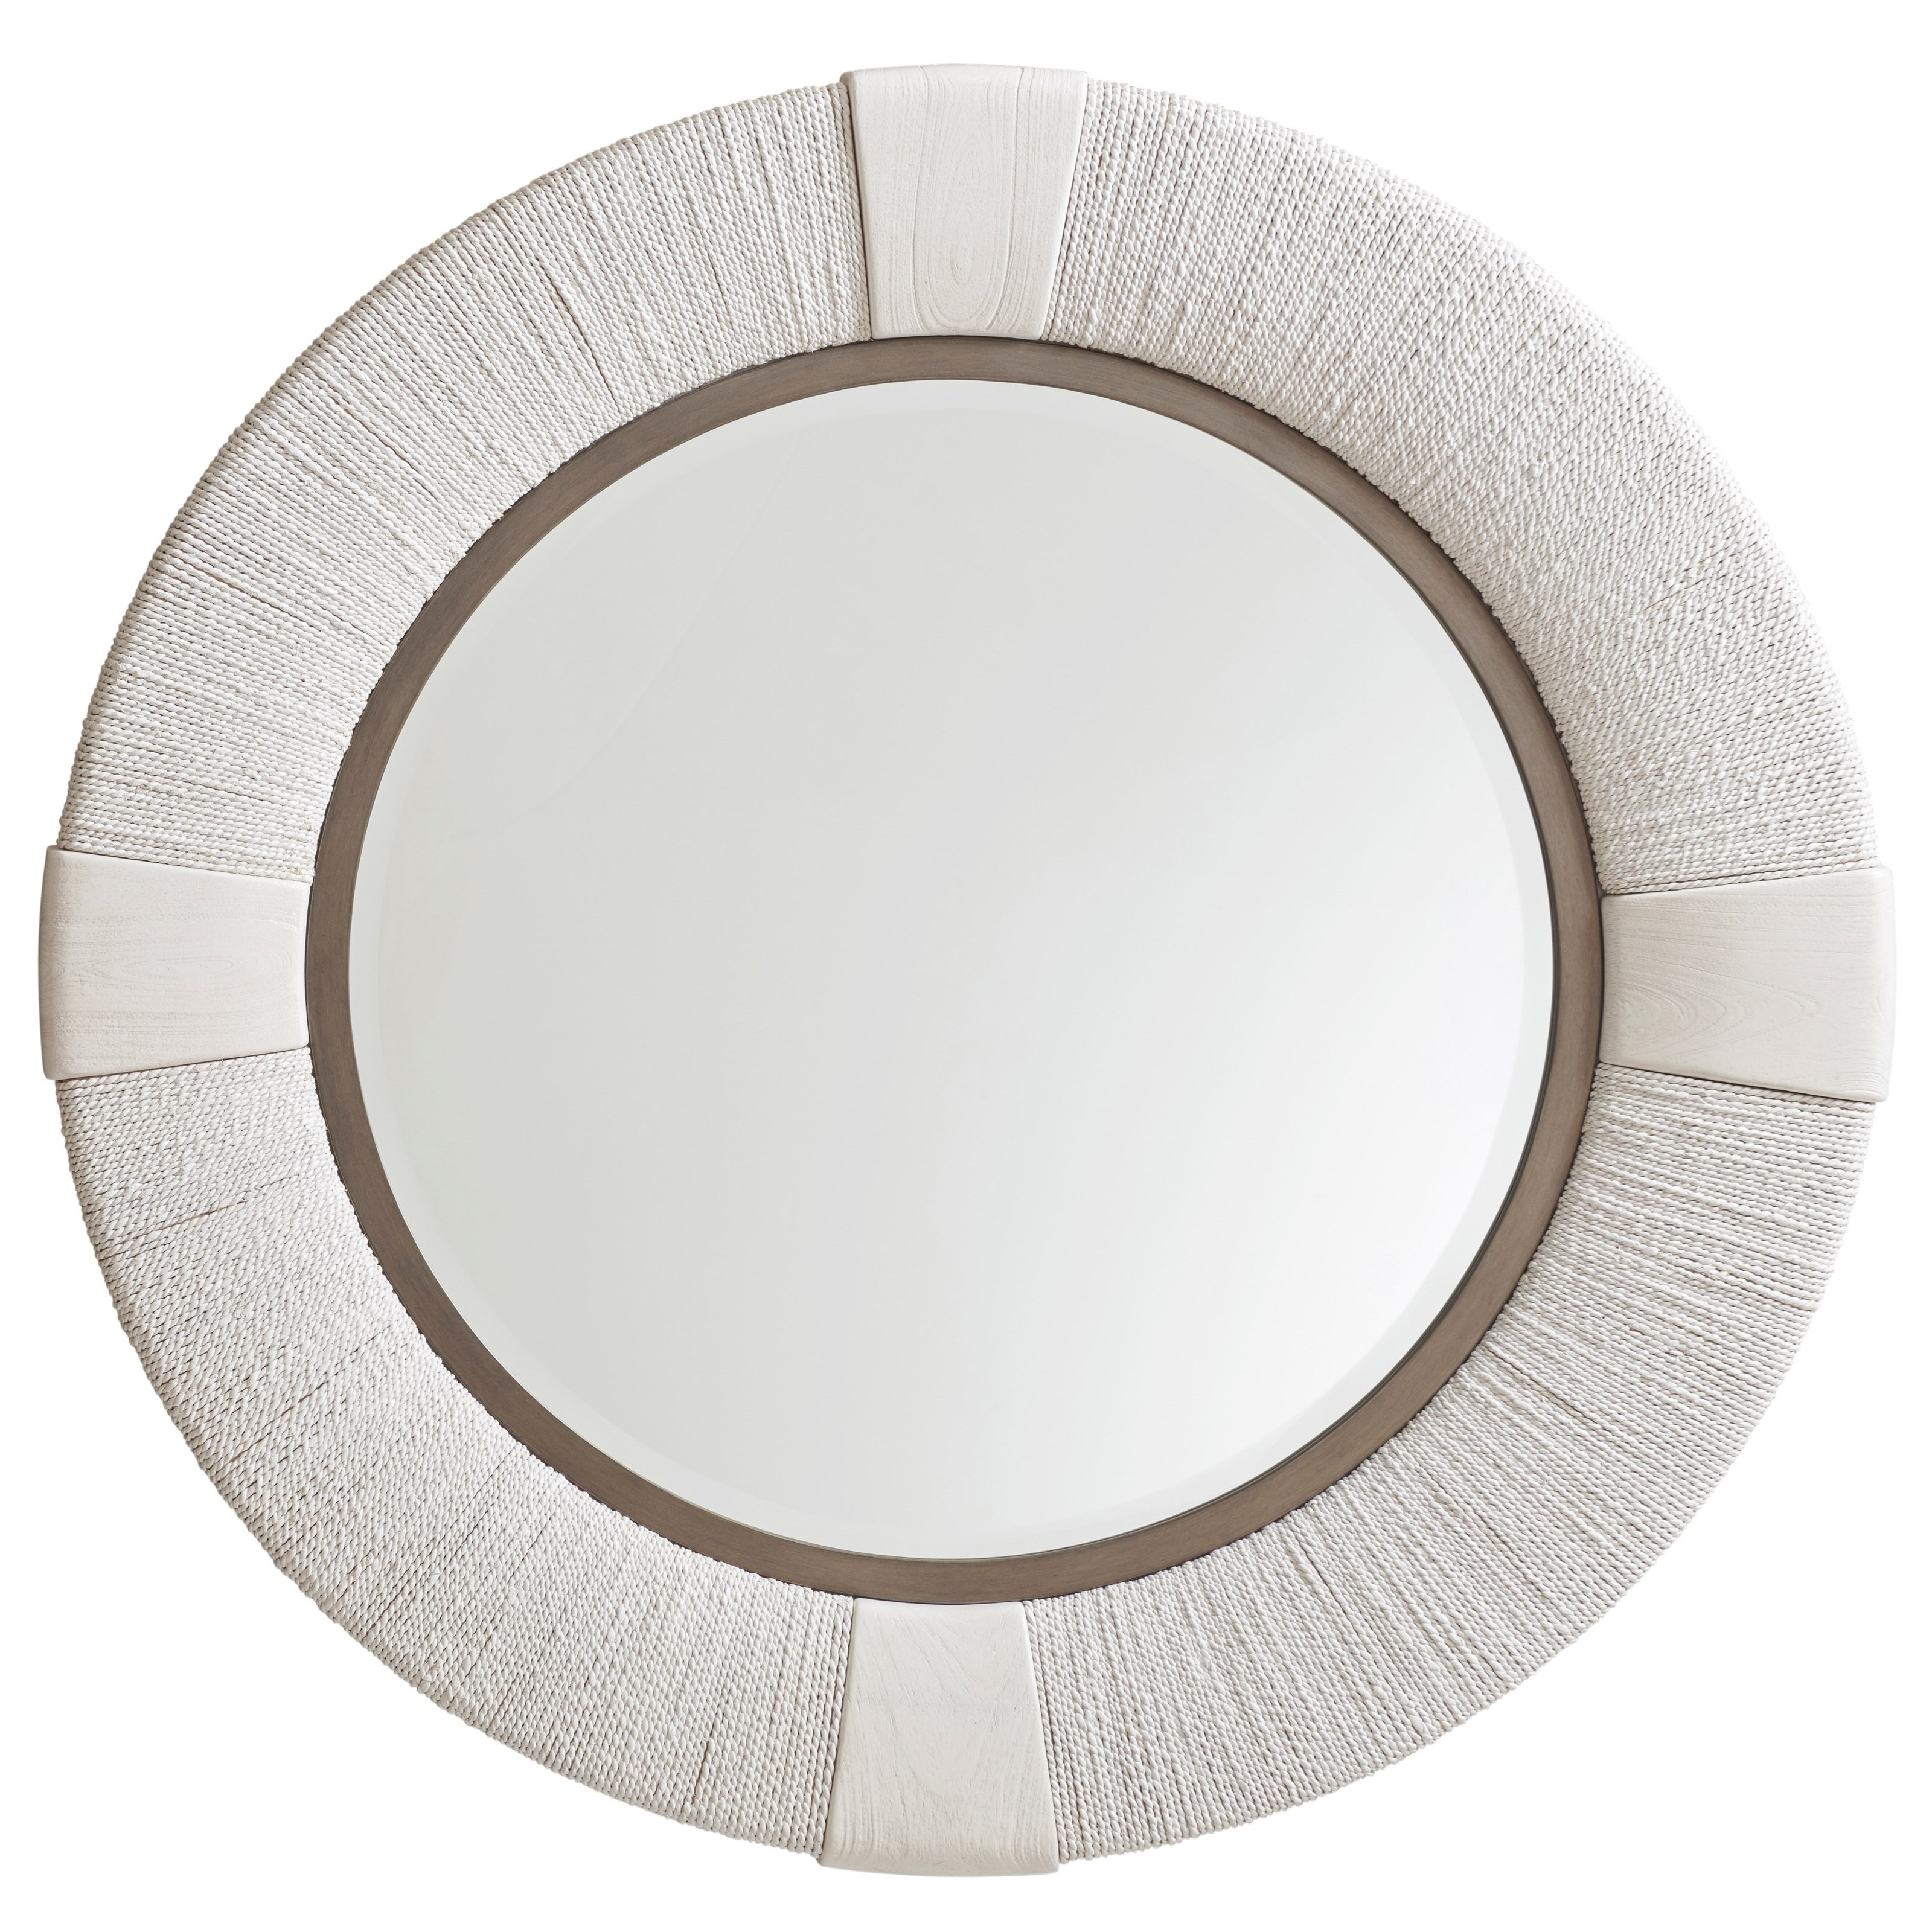 Ocean Breeze Seacroft Round Mirror by Tommy Bahama Home at Baer's Furniture